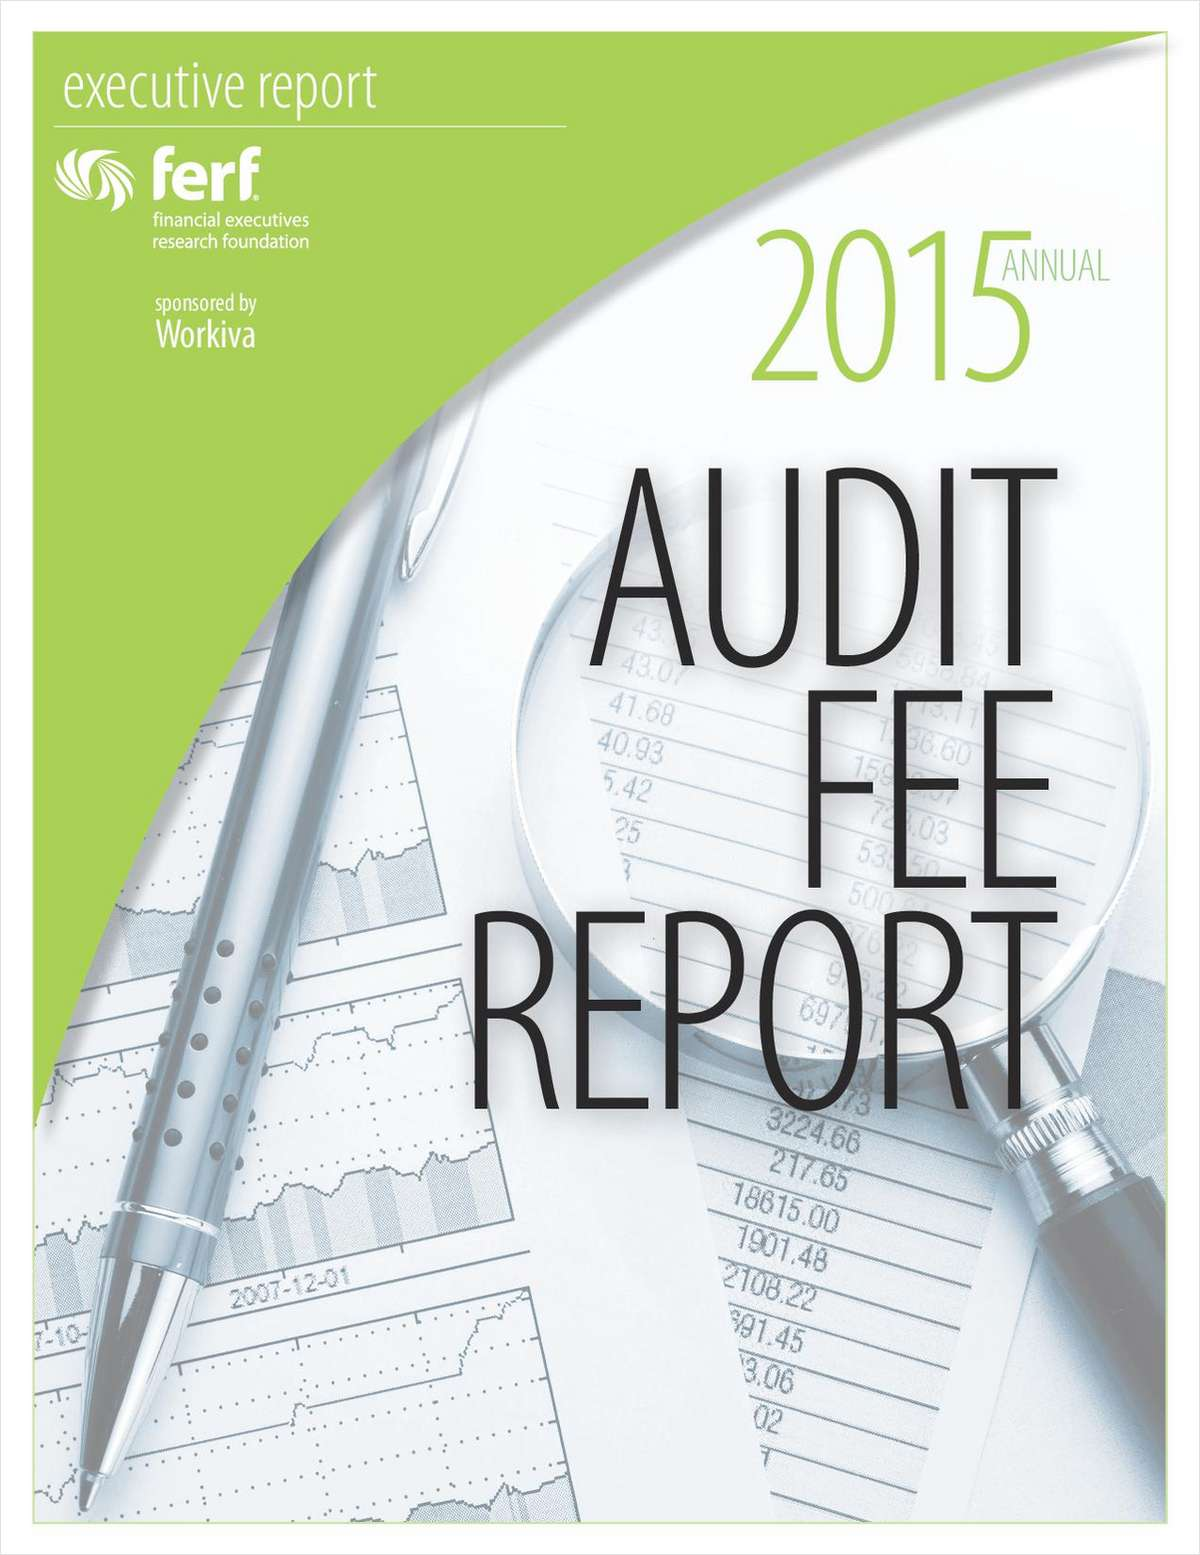 2015 Audit Fee Report from Financial Executives Research Foundation (FERF)